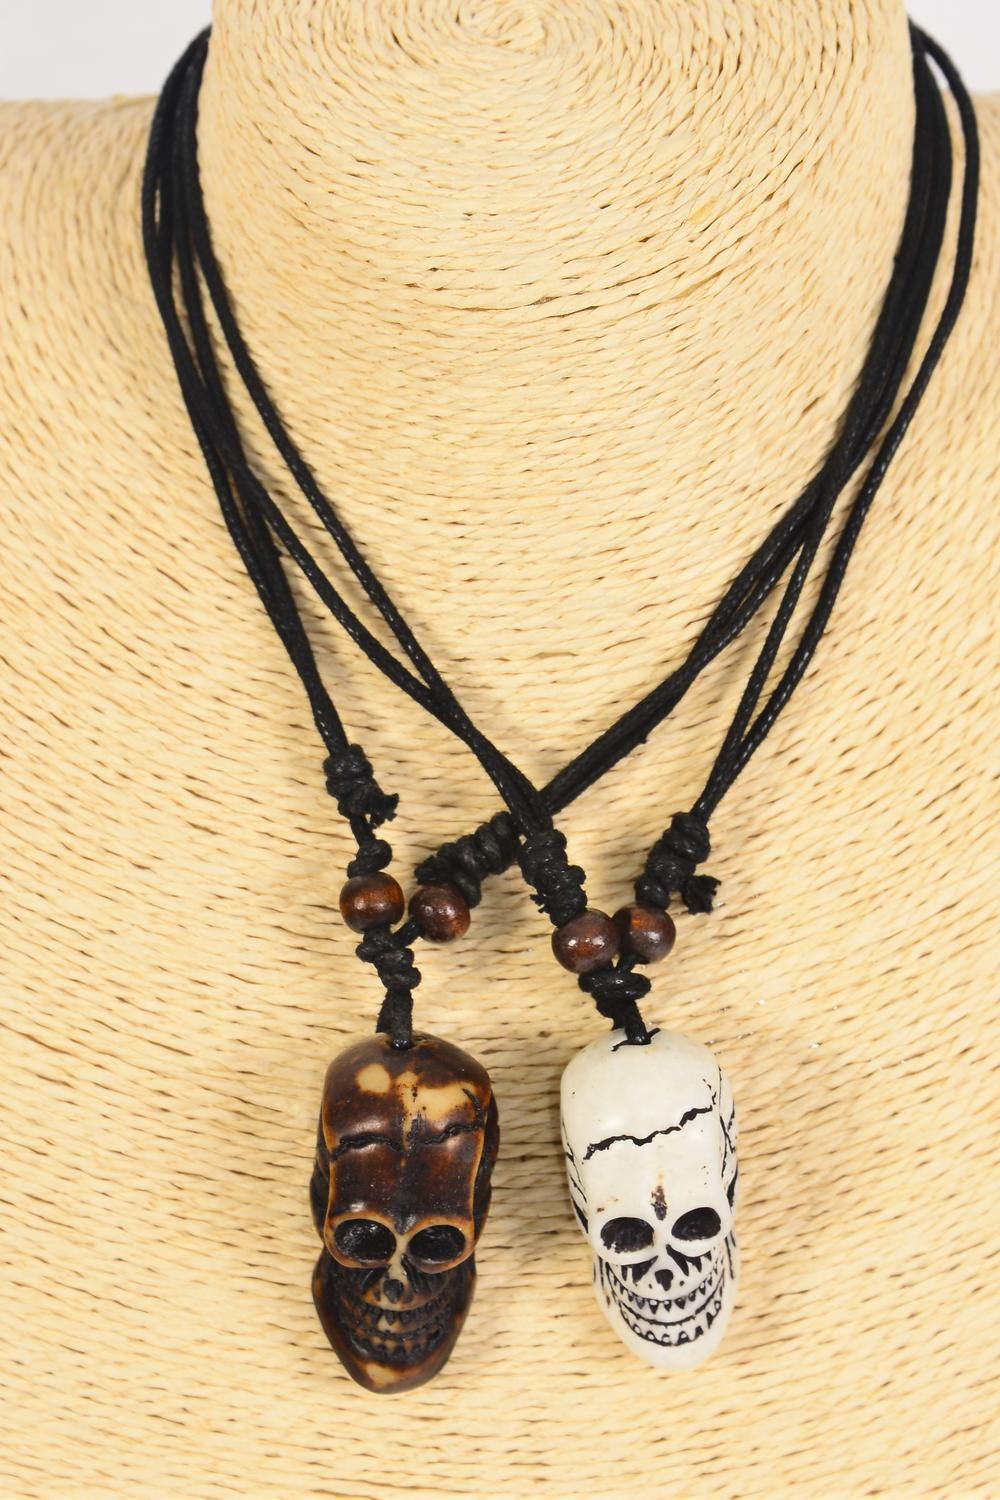 "Men's Necklace Skull Poly Black & Brown Asst/DZ **Adjustable** Skull Size-1.5""x 0.75"" Wide,6 Black & 6 Brown Mix,6 of each Color Asst,Hang Tag & OPP Bag & UPC Code -"